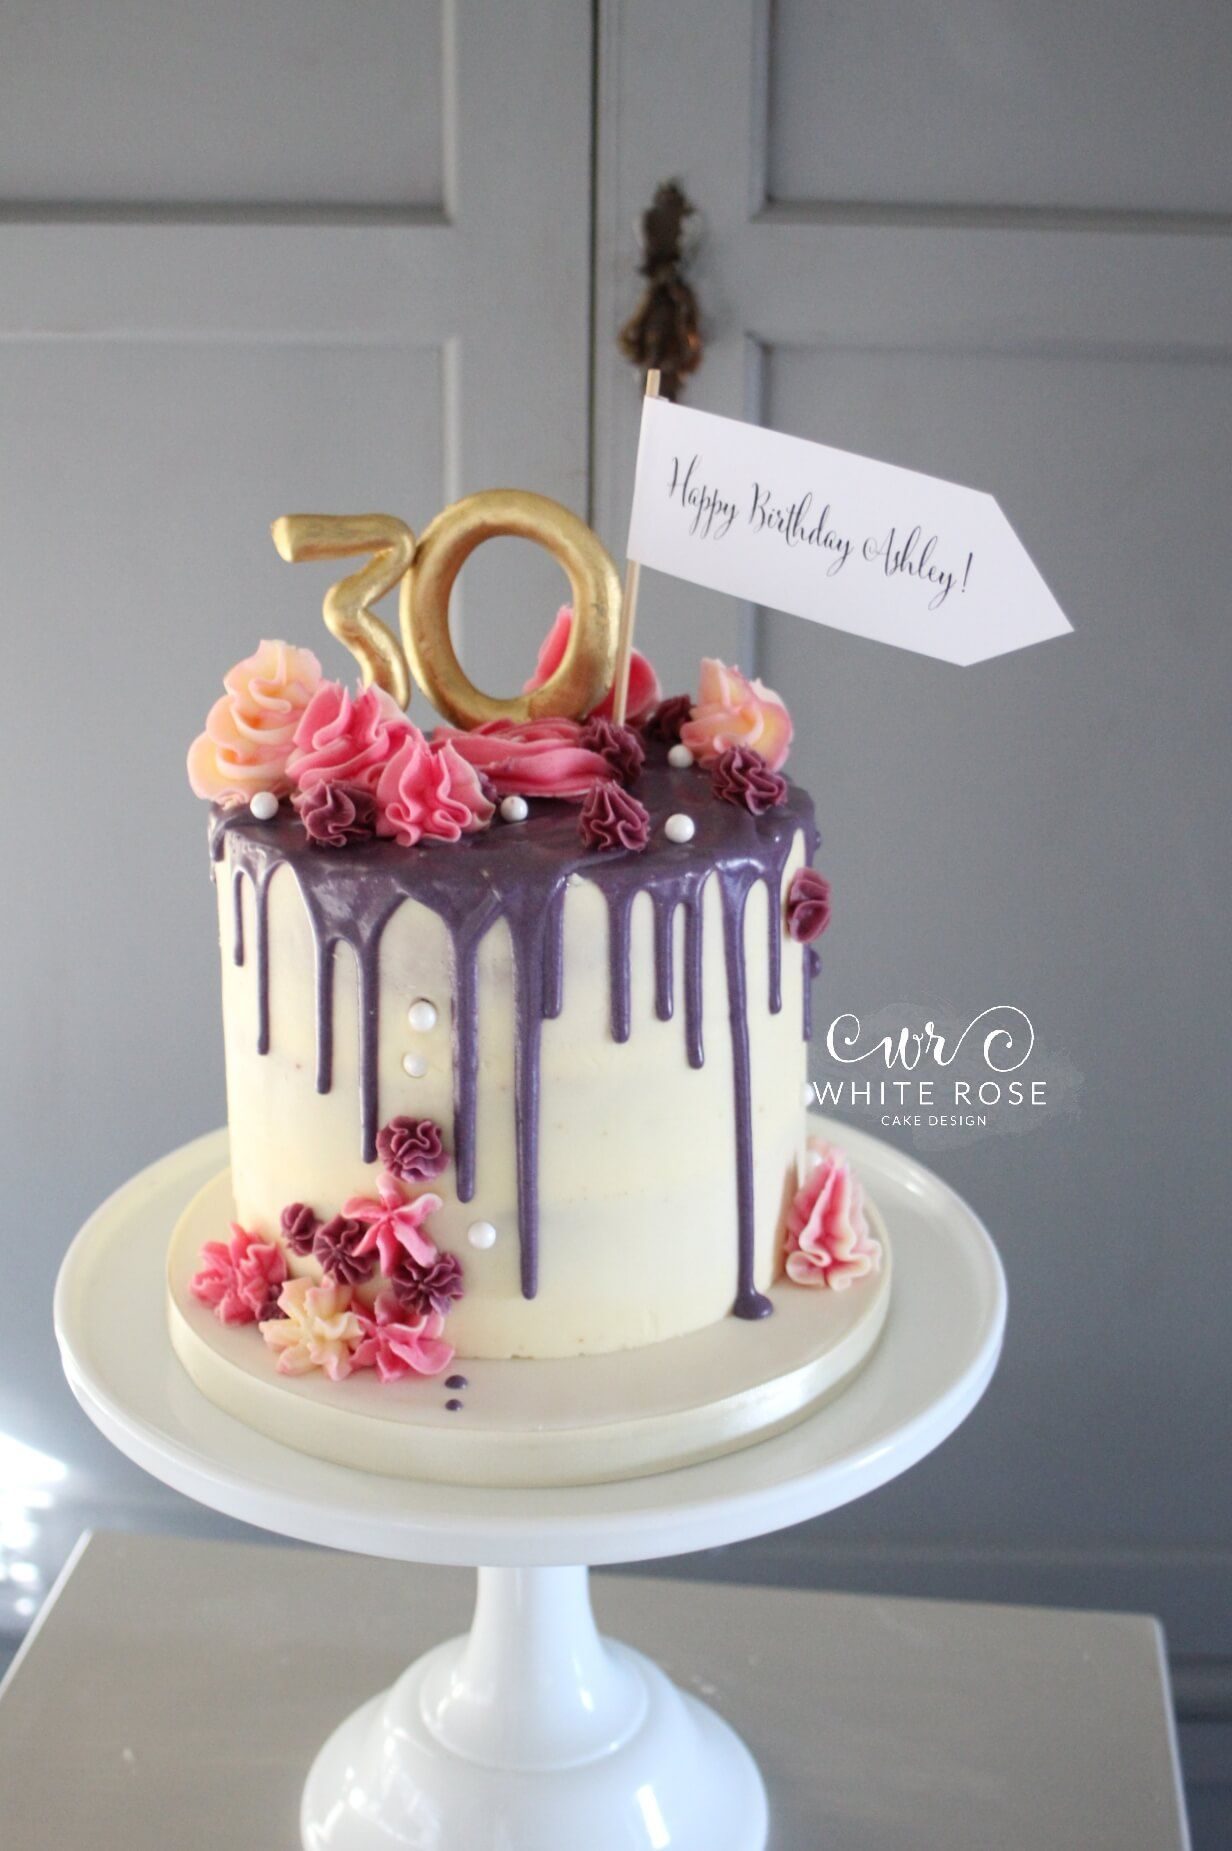 Birthday Cakes, Christening Cakes and Other Celebration